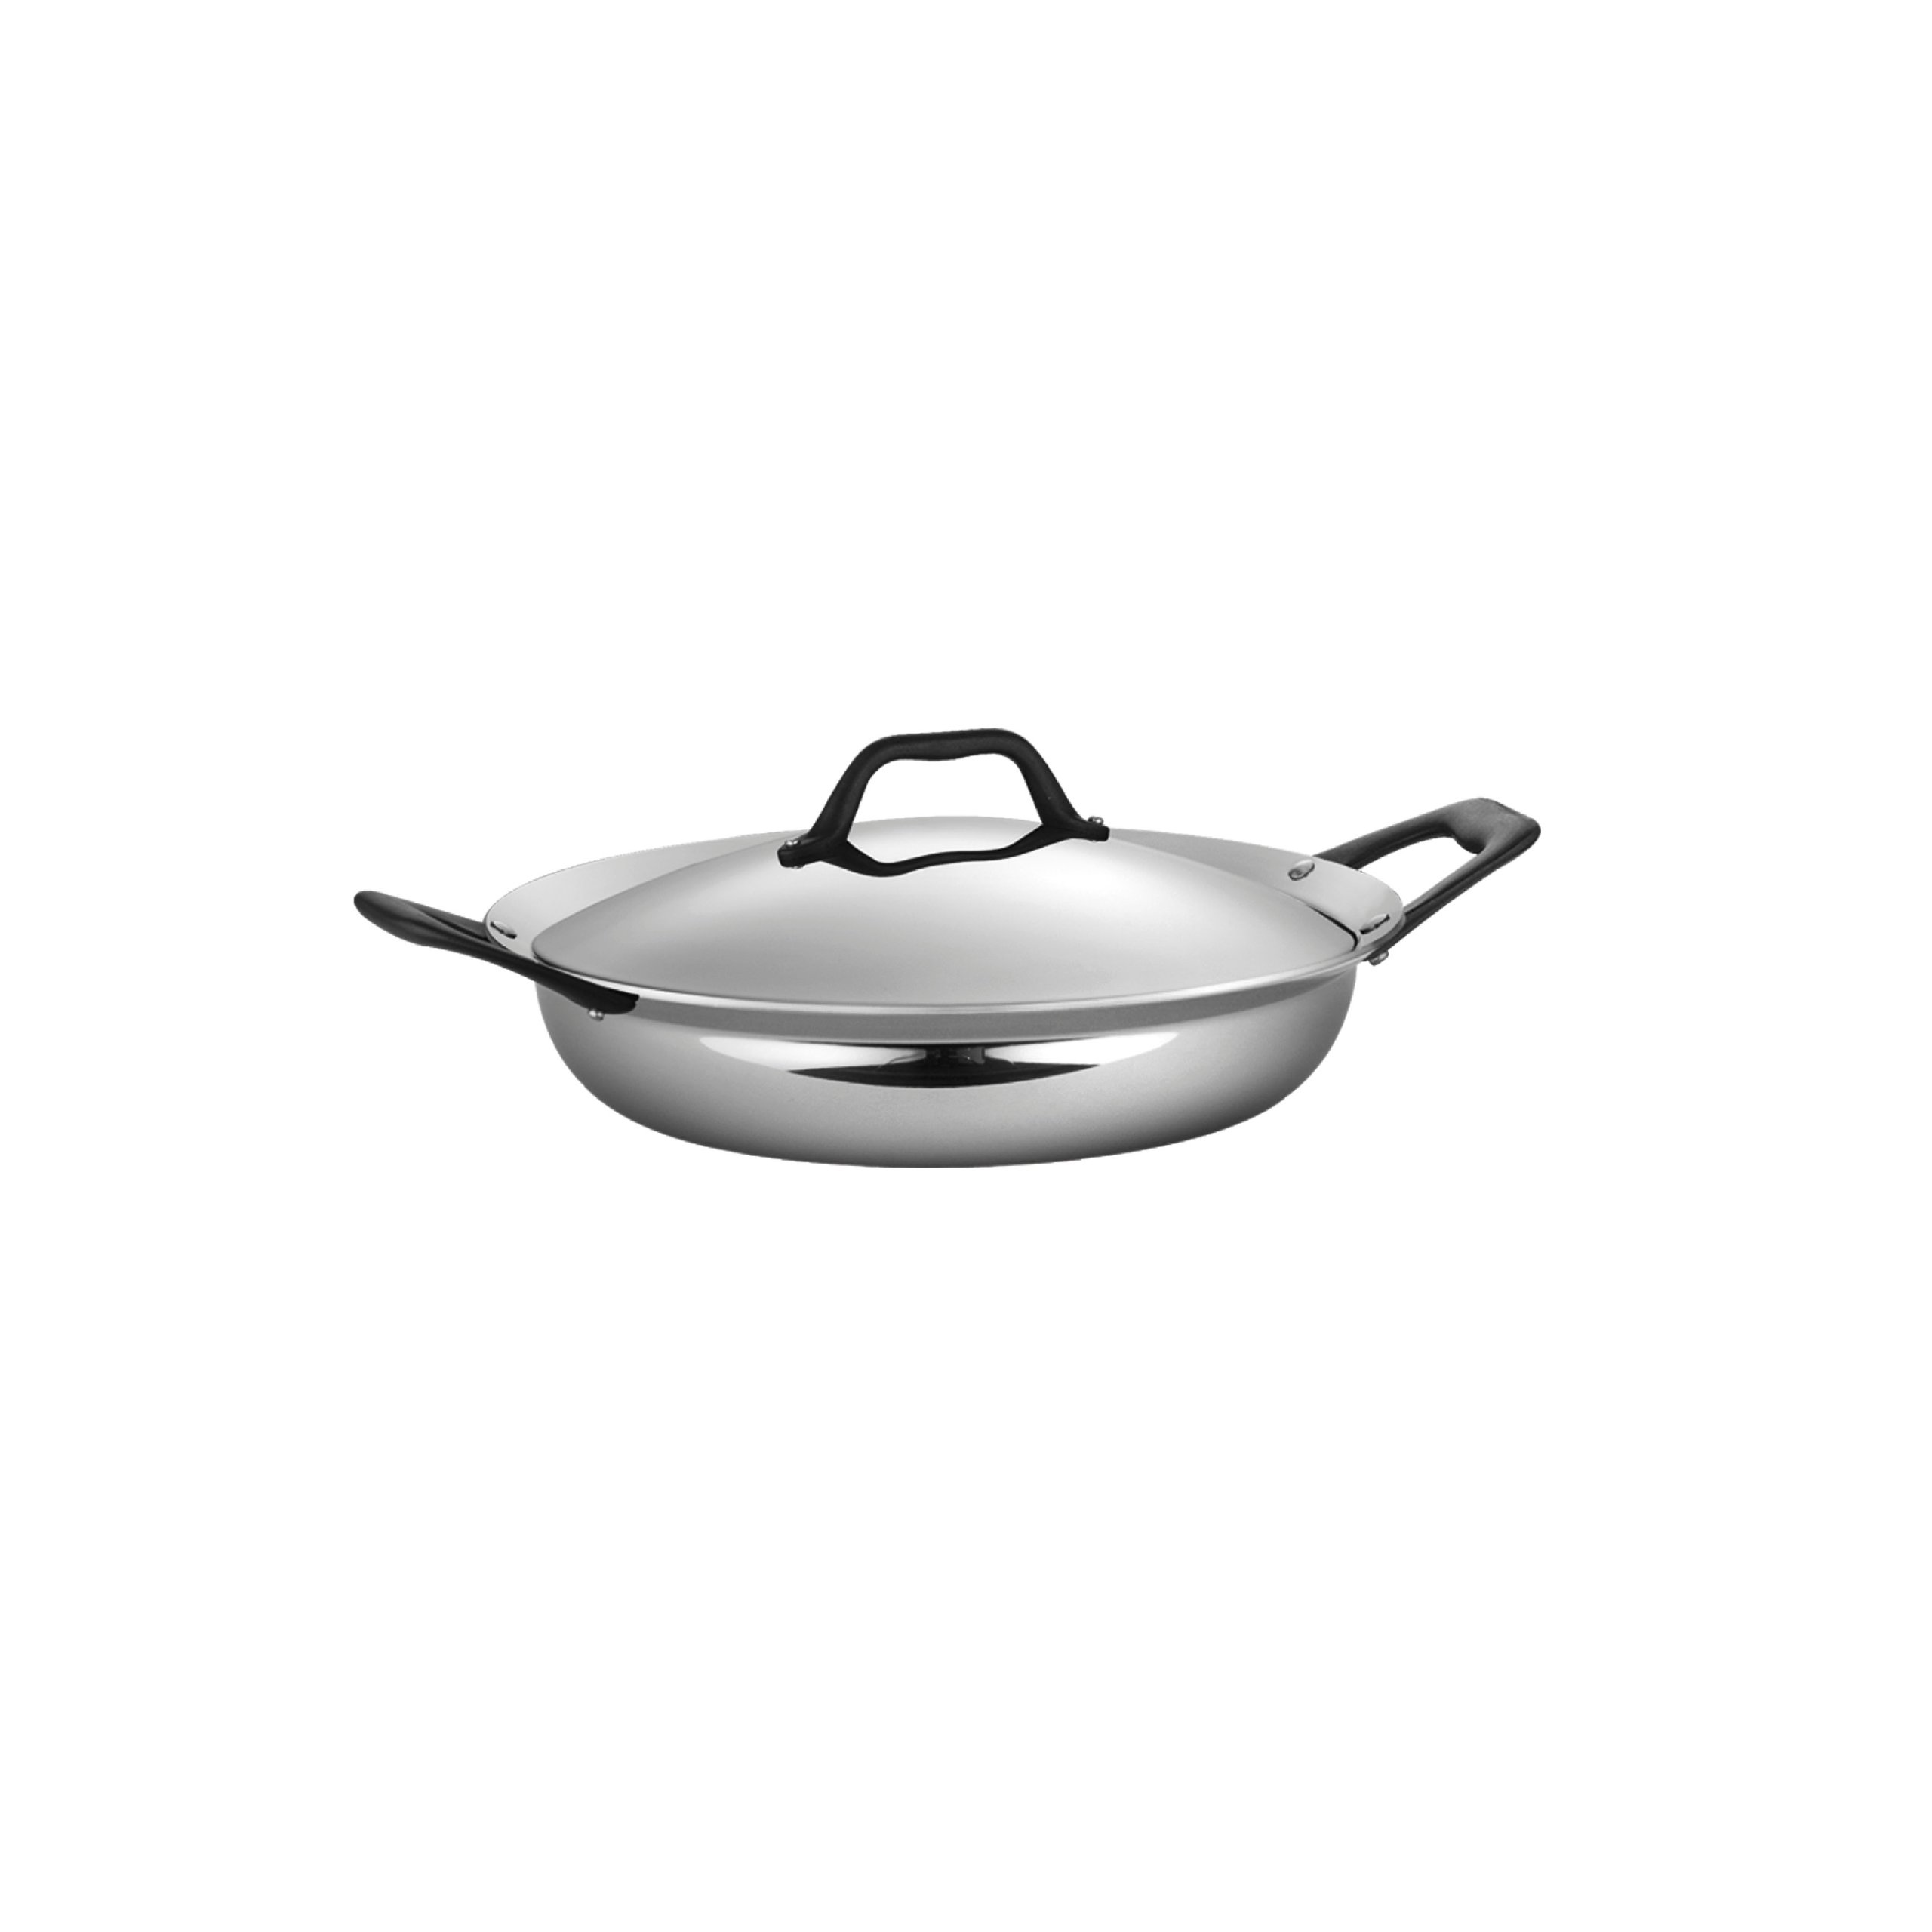 Tramontina Limited Editions Barazzoni 3 Quart Stainless Steel Covered Tri-Ply Clad Everyday Pan by Tramontina